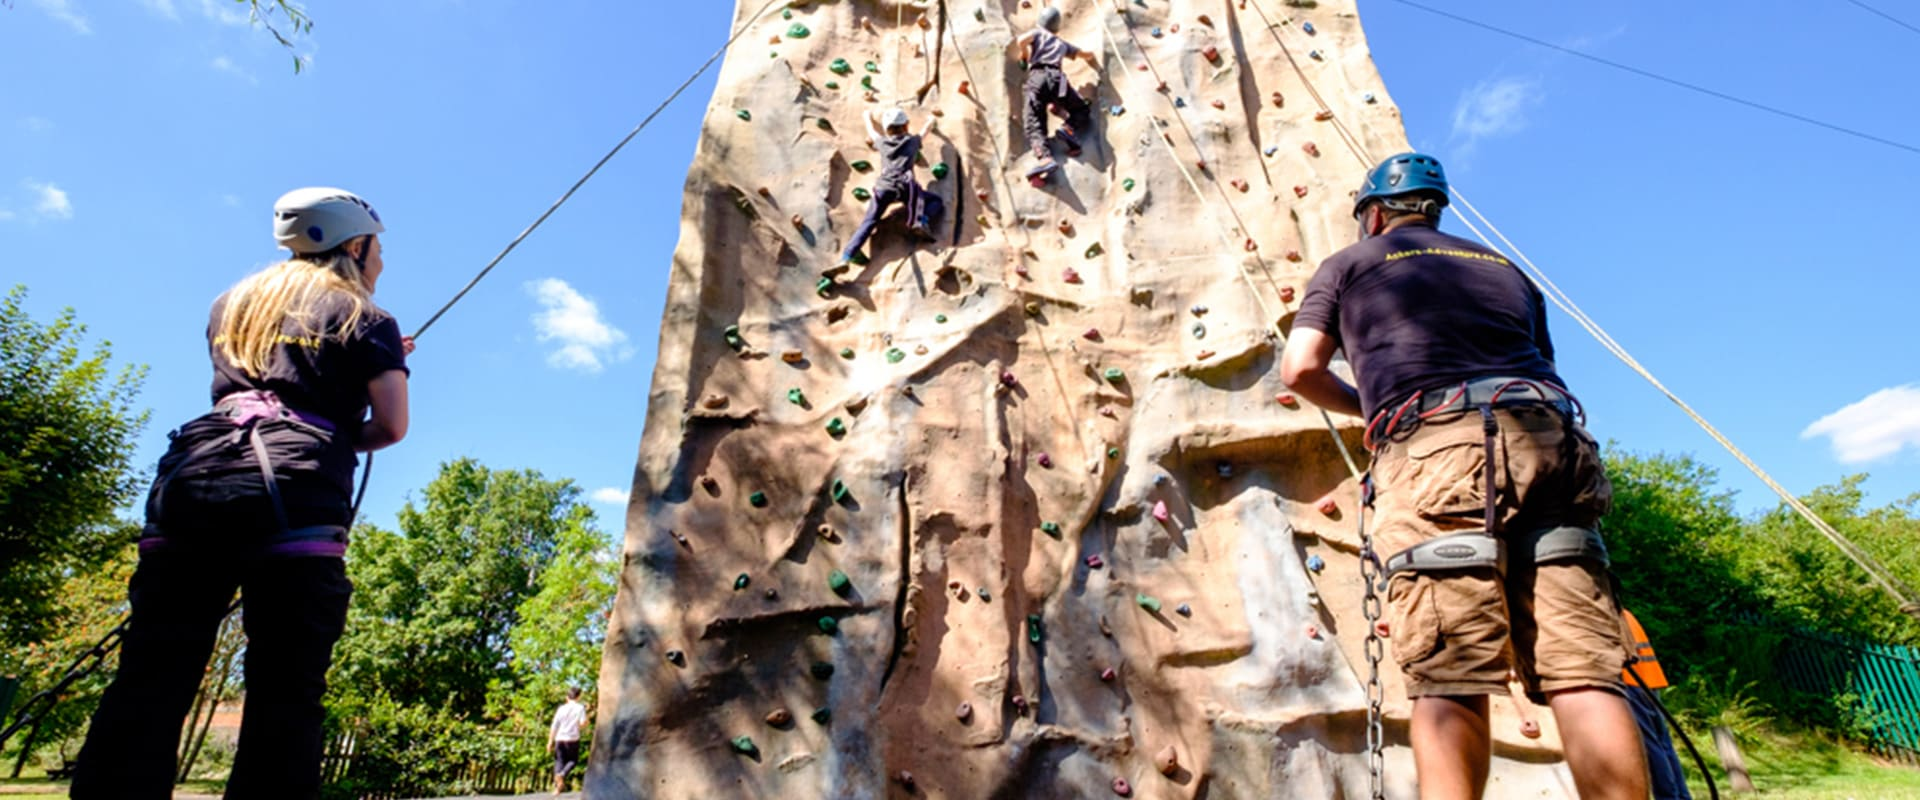 Climbers on our Climbing wall in Birmingham